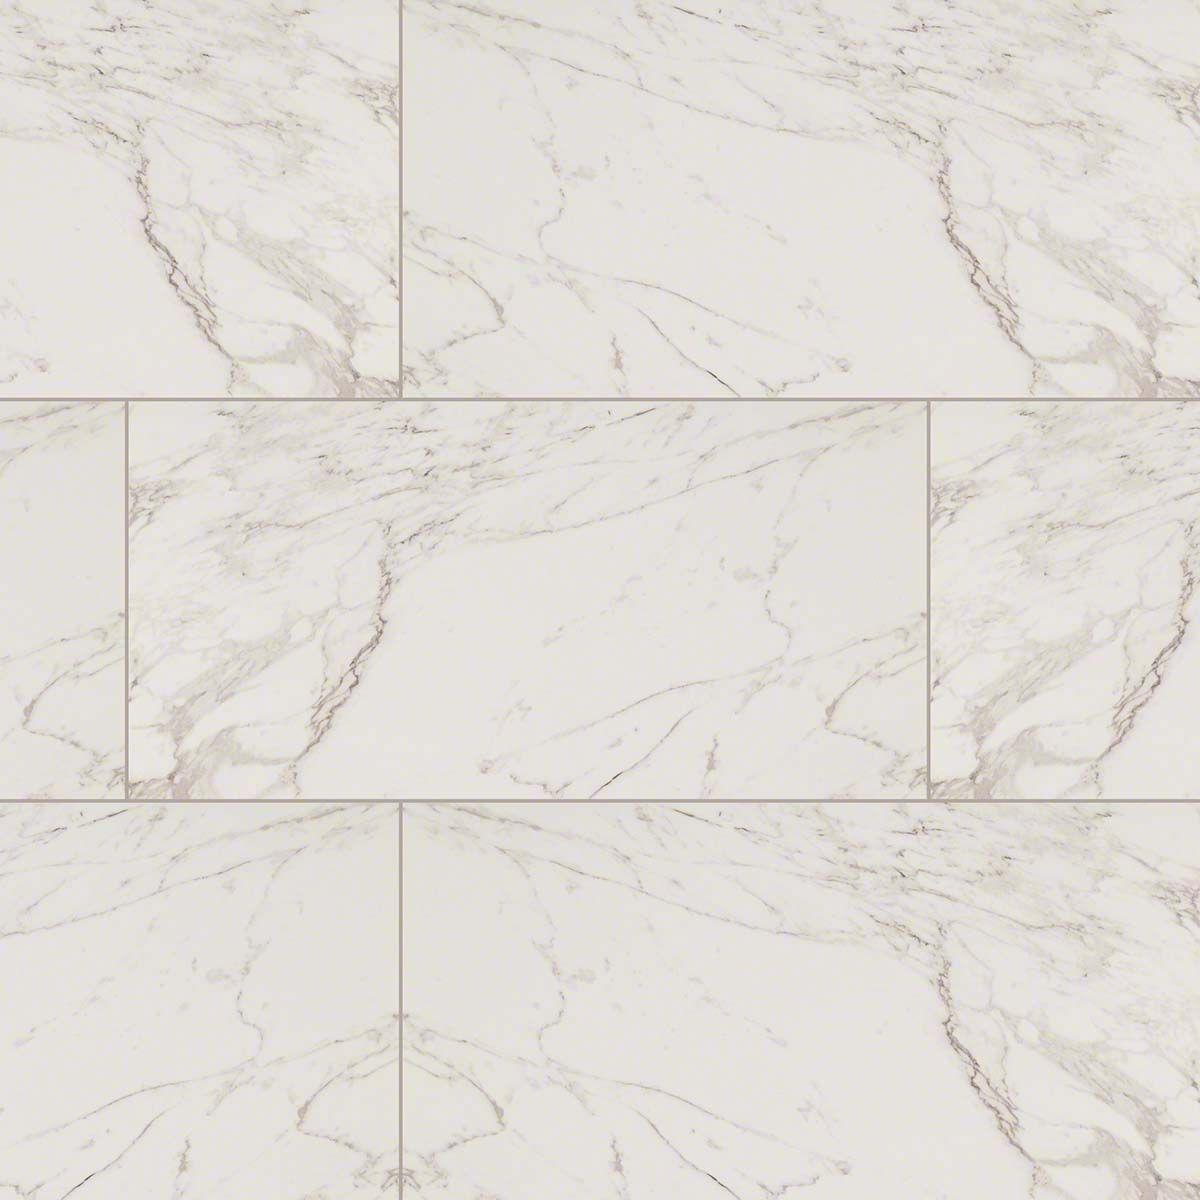 Msi Pietra Series Carrara Marble Look Porcelain Tile In Polished Finished Size 12 X 24